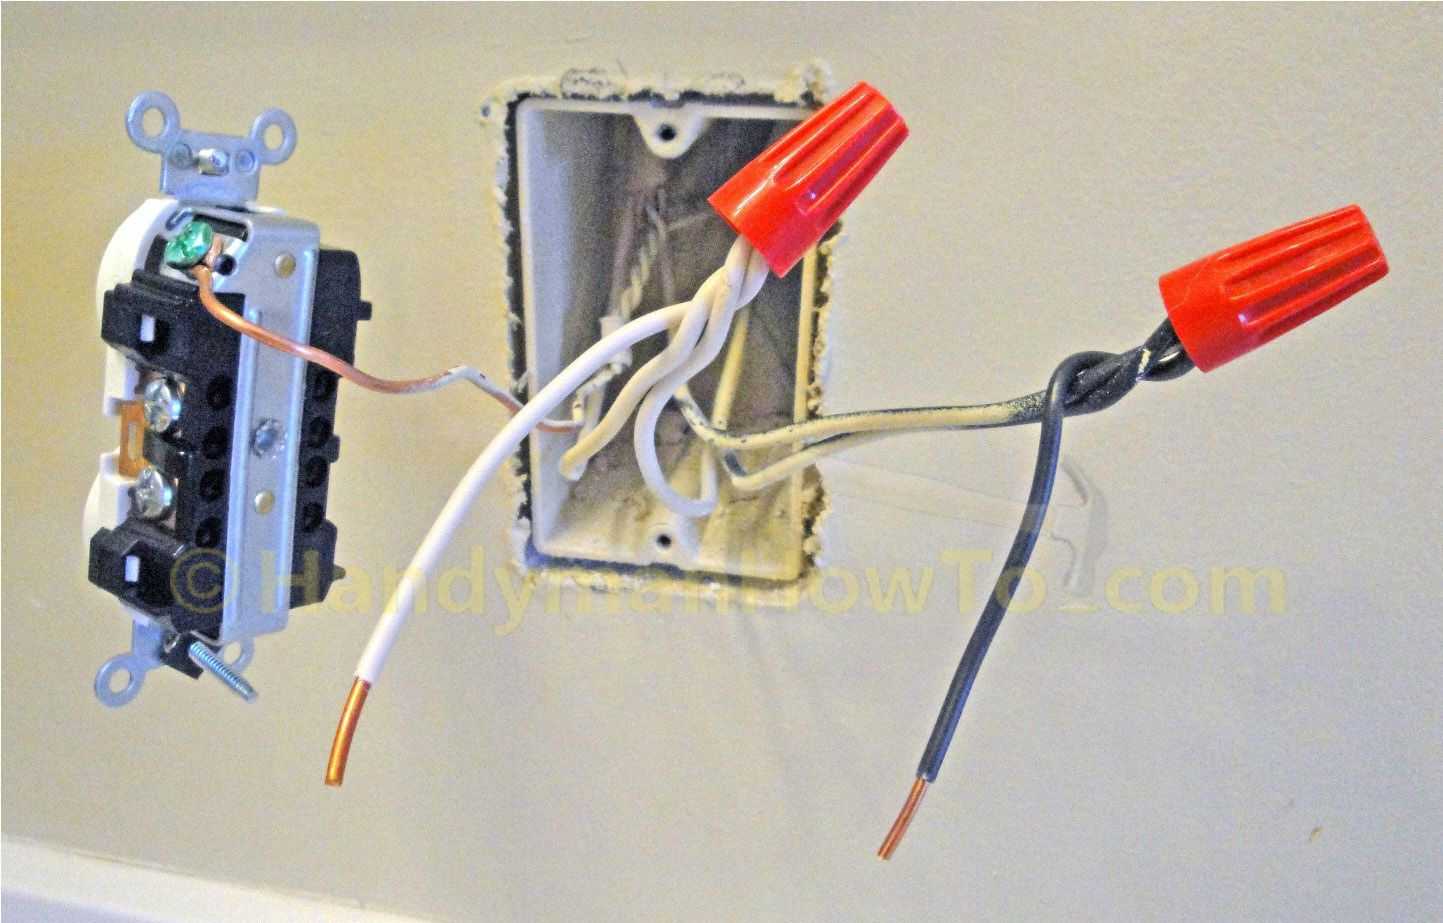 hight resolution of backwiring an electrical outlet in parallel with pigtail connections